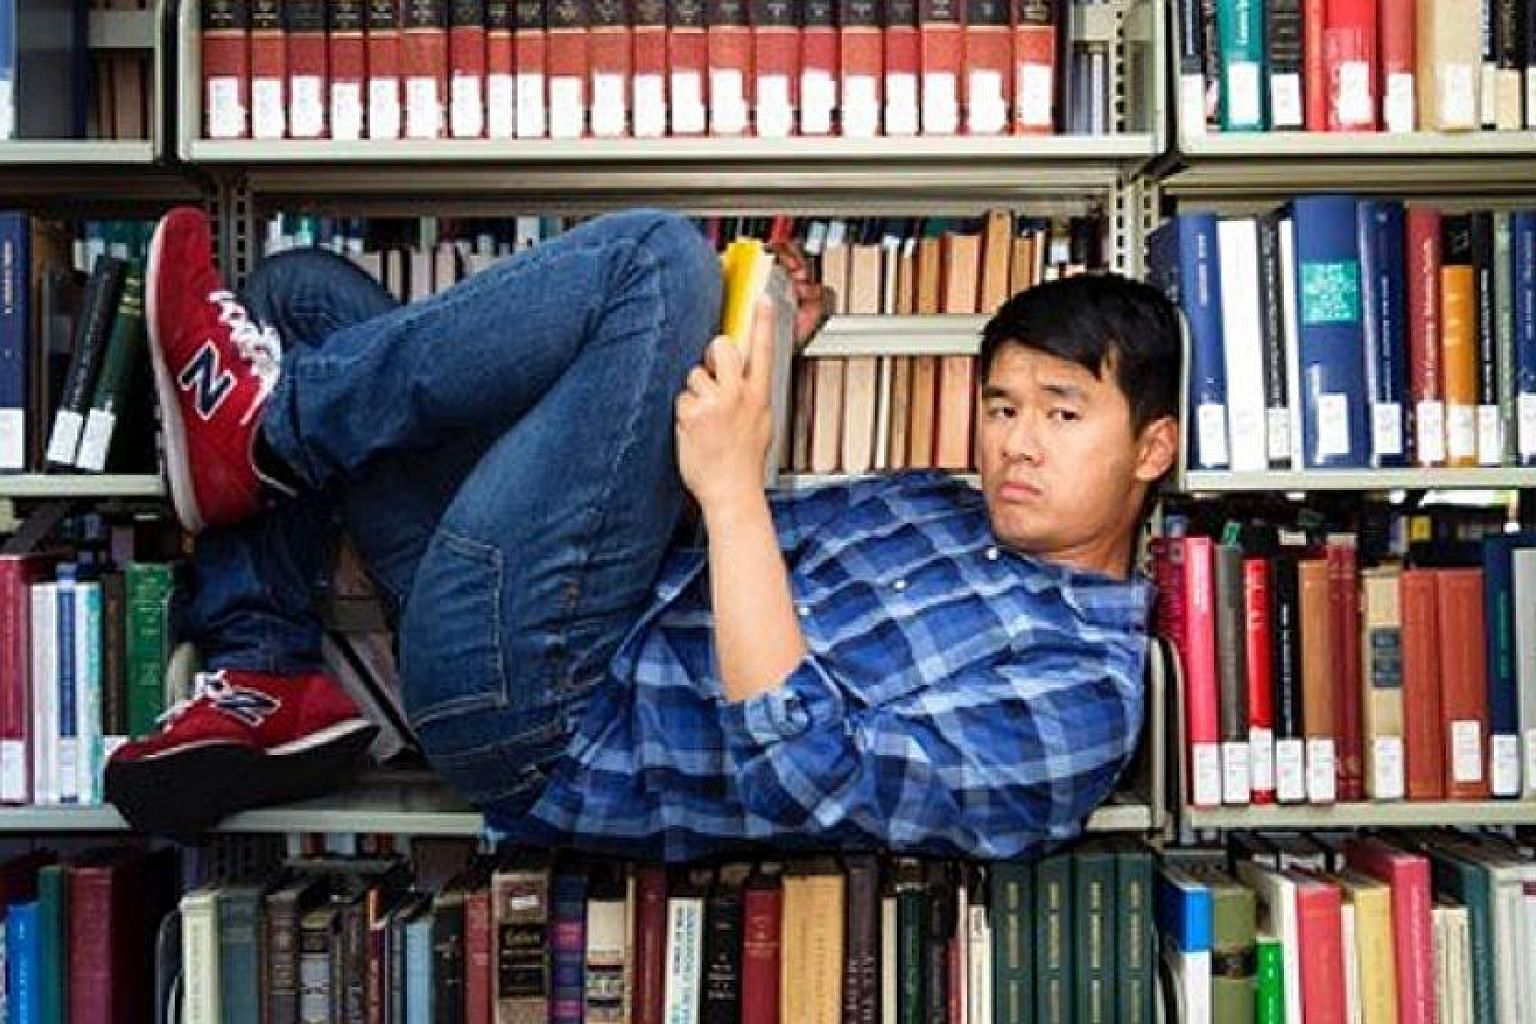 Comedian Ronny Chieng completed most of his education in Singapore.